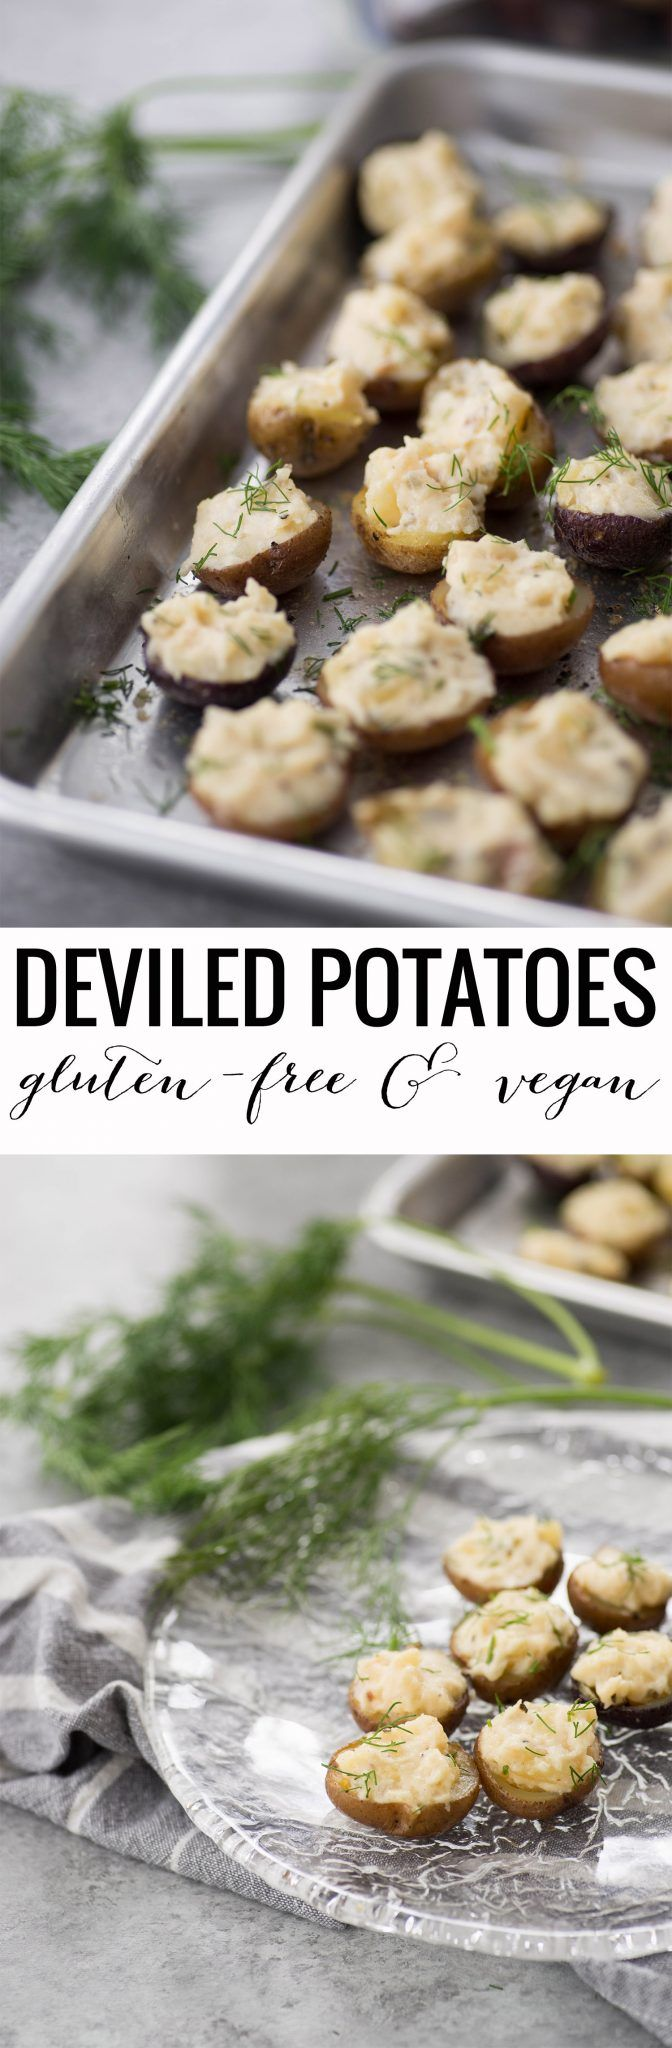 Deviled Potatoes! These mini potatoes are the perfect Spring appetizer. Crispy potato shells stuffed with deviled dill potato filling. Vegan, Gluten-Free.